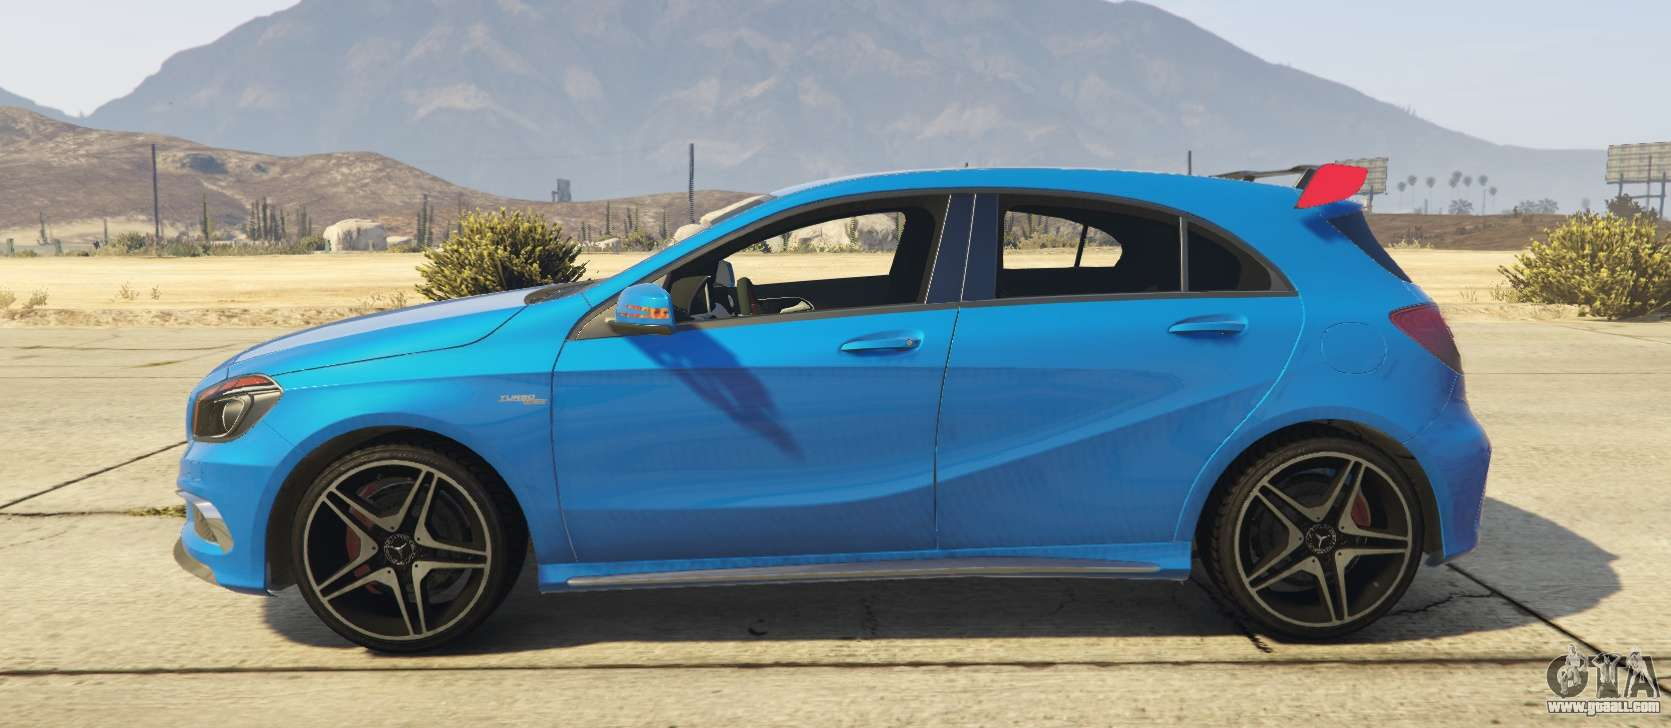 Mercedes benz a45 amg 2017 for gta 5 for Mercedes benz amg 2017